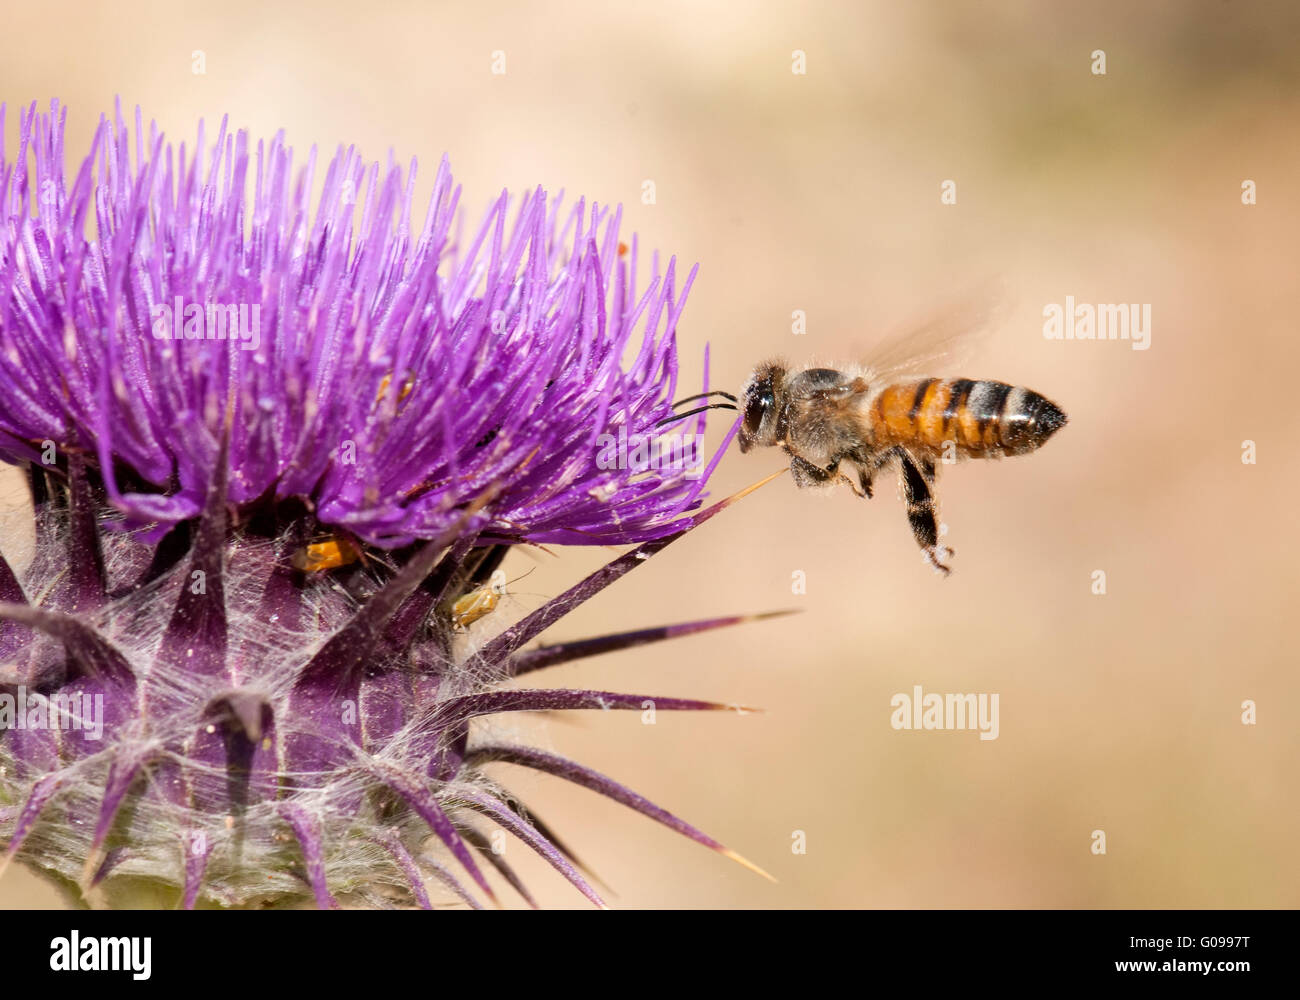 Honey bee approaching thorn flower - Stock Image